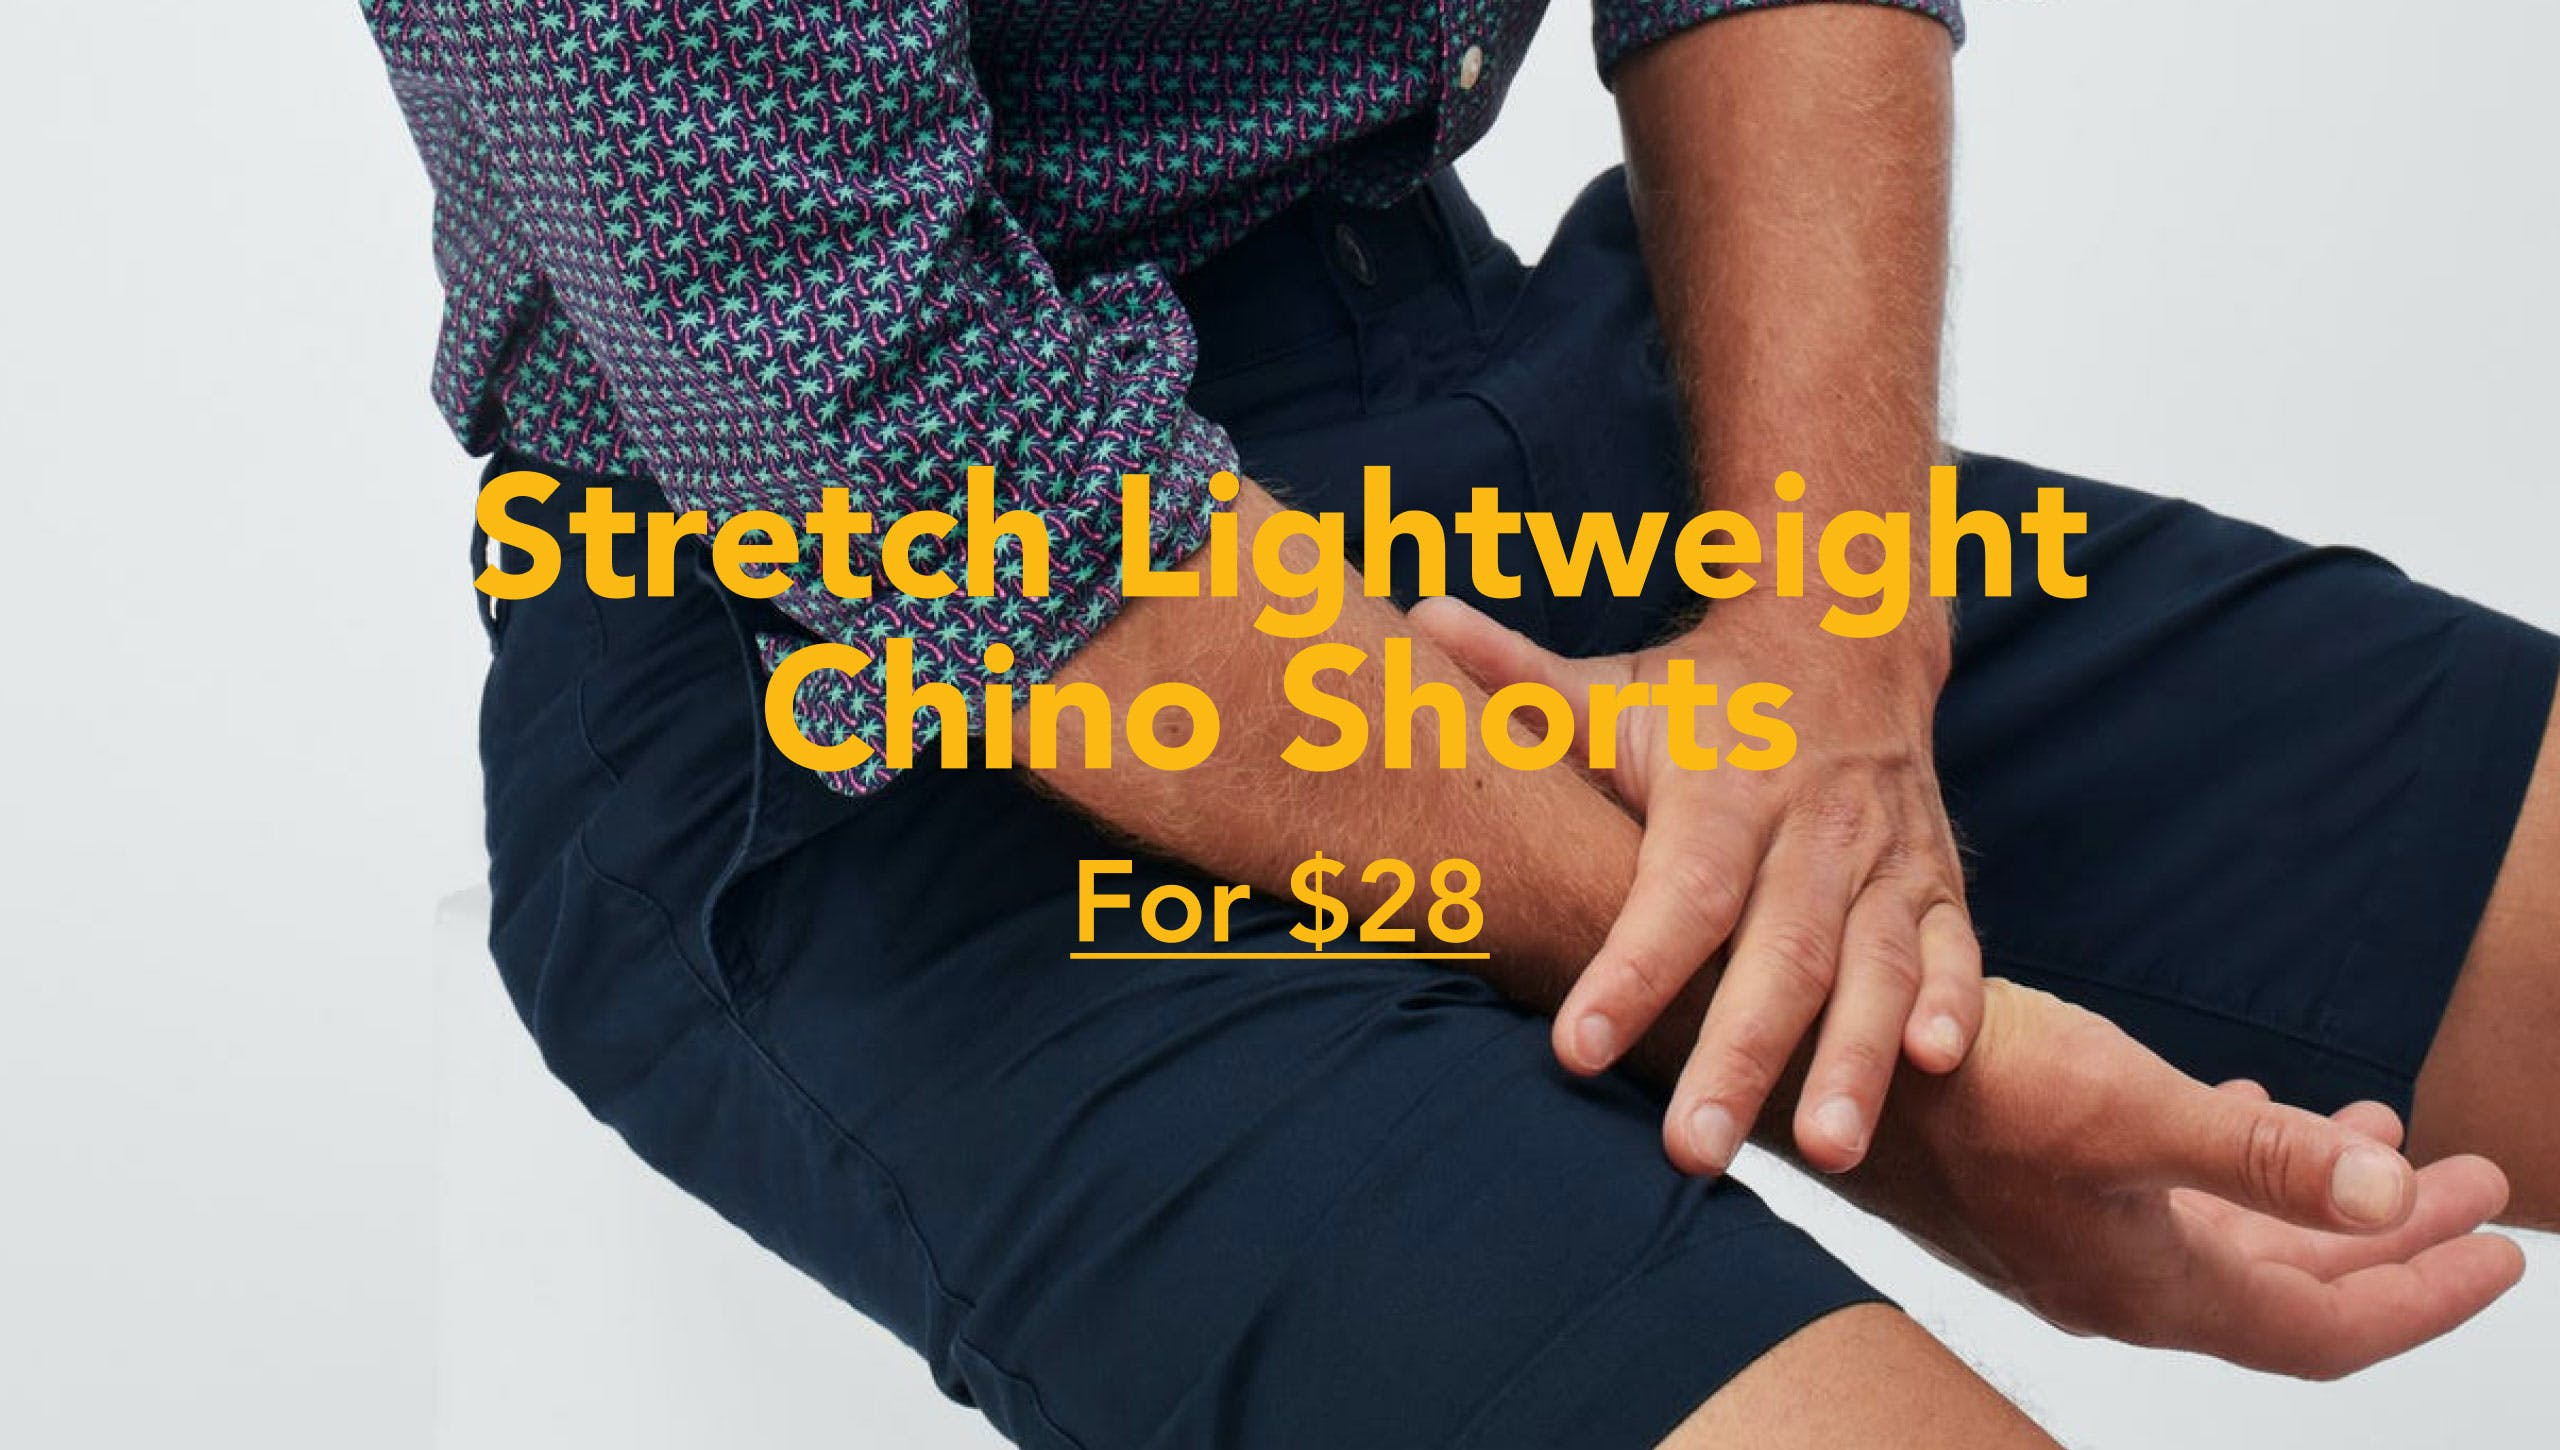 Stretch Lightweight Chino Shorts For $28